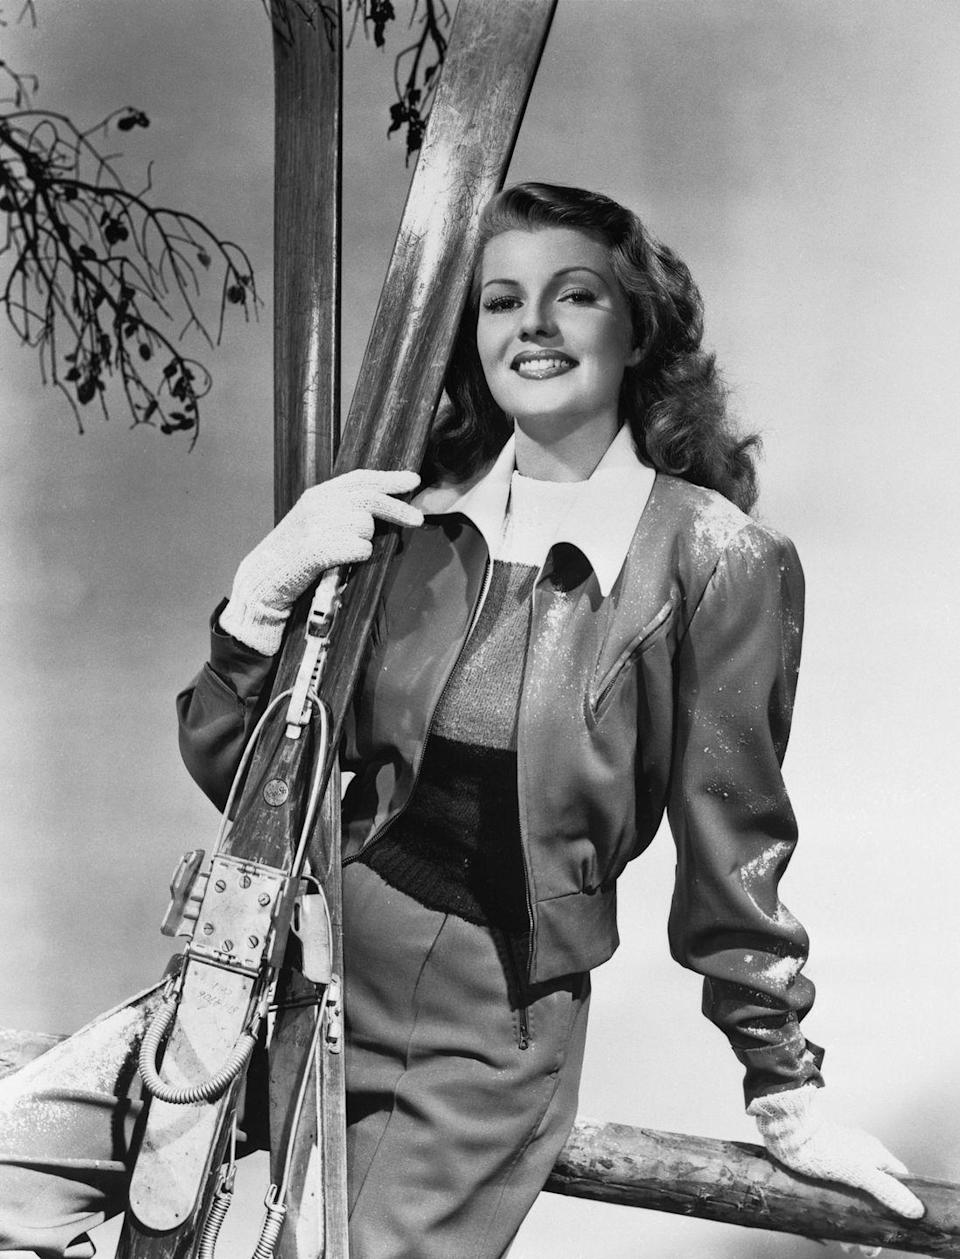 <p>Rita Hayworth doesn't quite look like she's on top of a mountain, however she looks ready for the slope with those skis, circa 1940. </p>